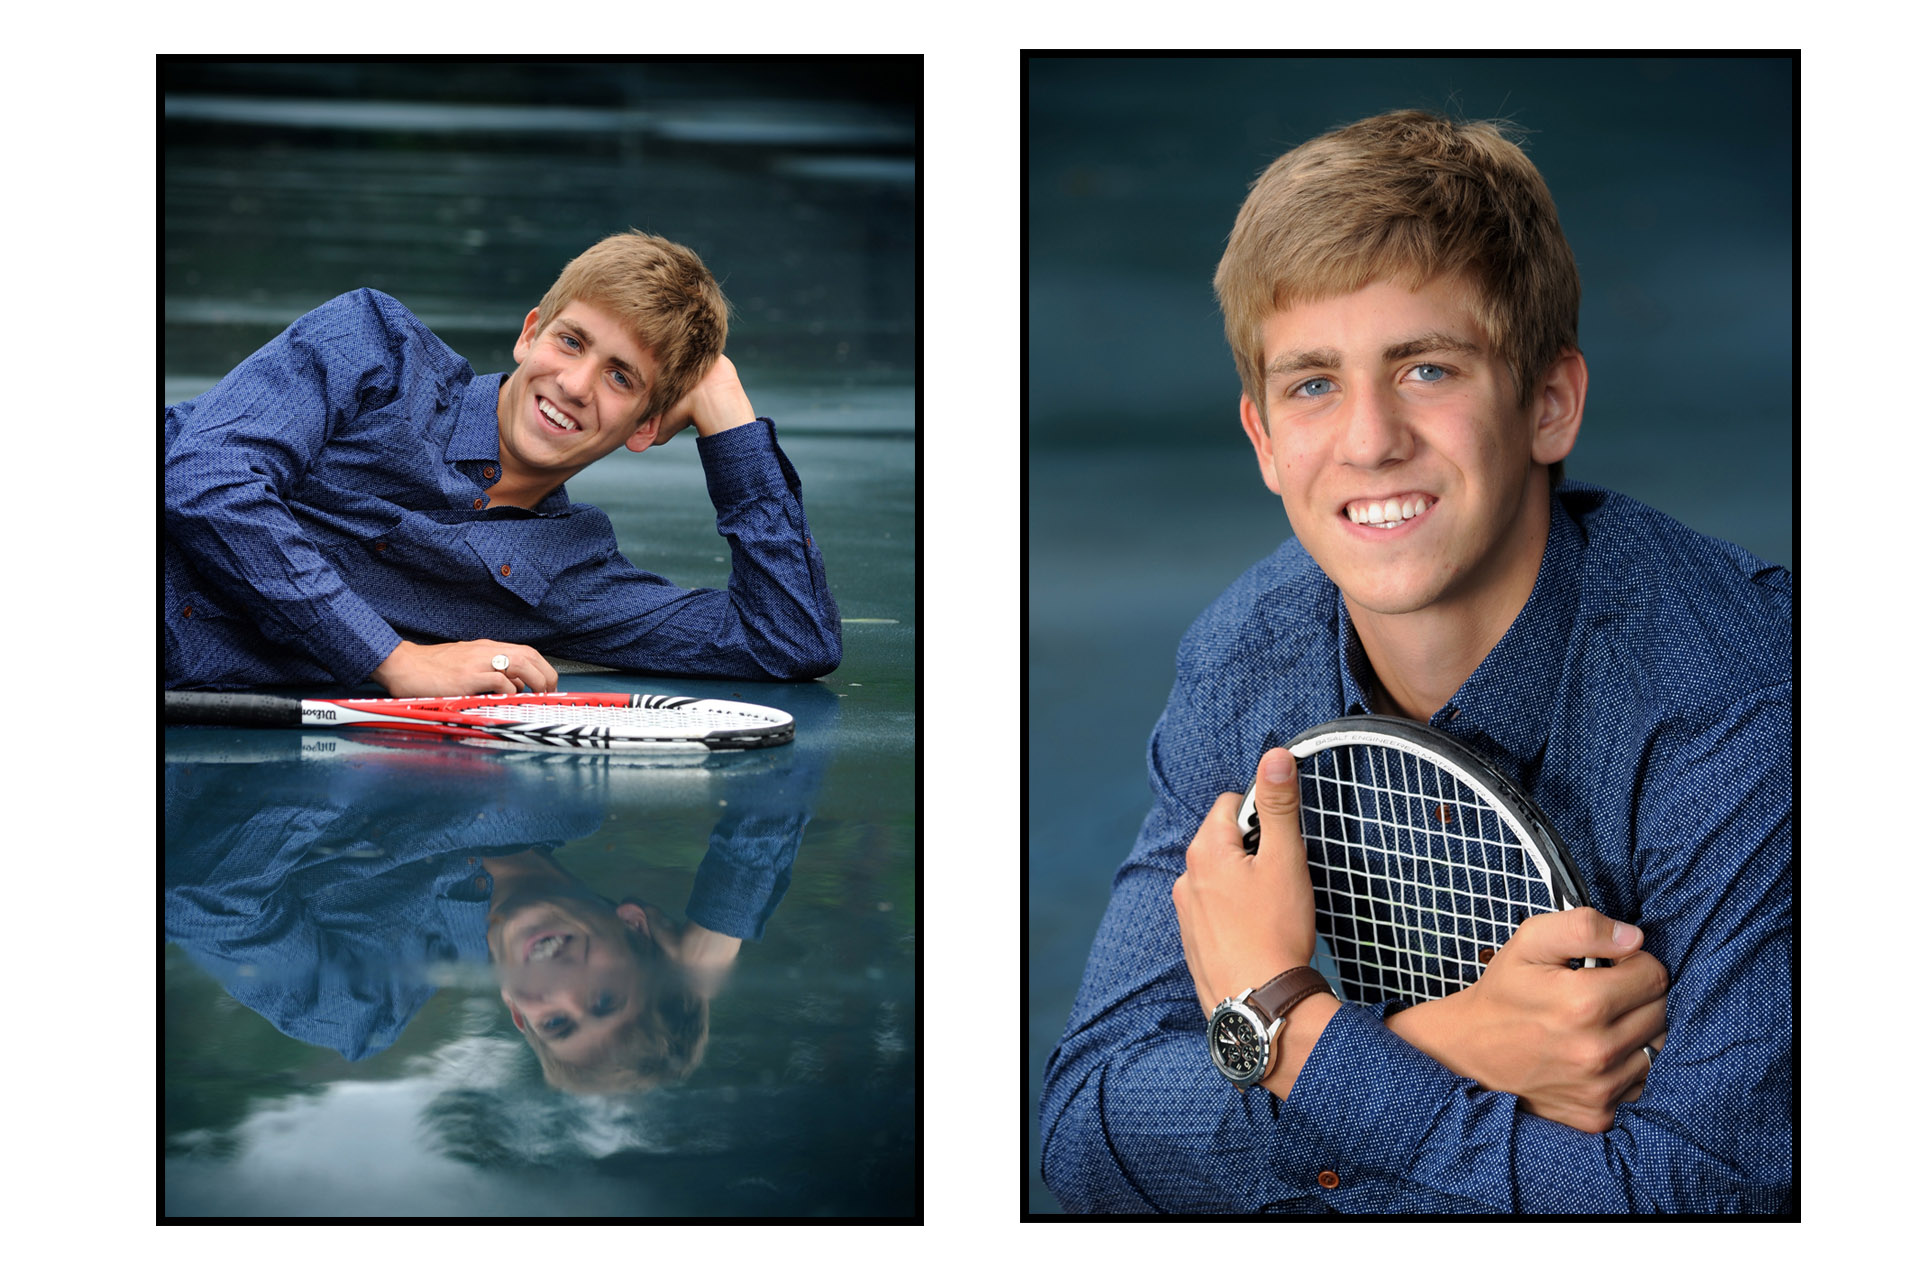 cranbrook , Michigan senior photographer's photo taken of a tennis team player's senior photos at Cranbrook School in Bloomfield, Michigan.